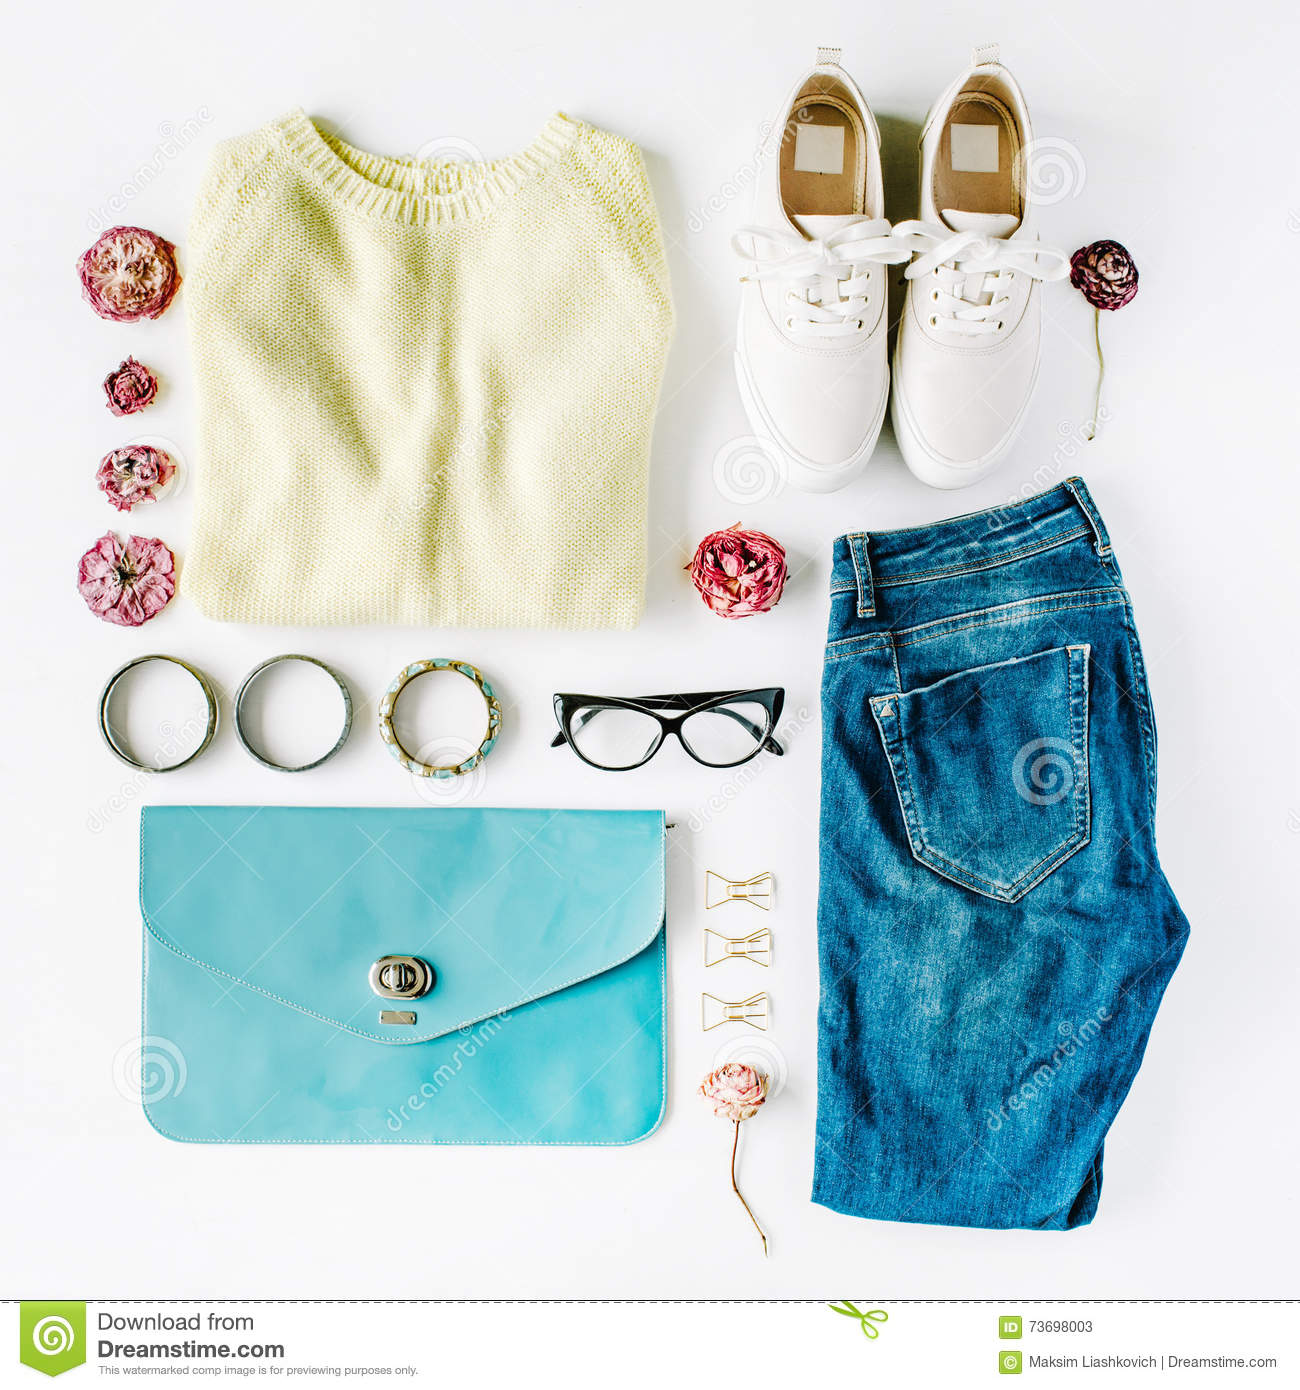 80c6009aff42 Flat lay feminine clothes and accessories collage with cardigan, jeans,  glasses, bracelet